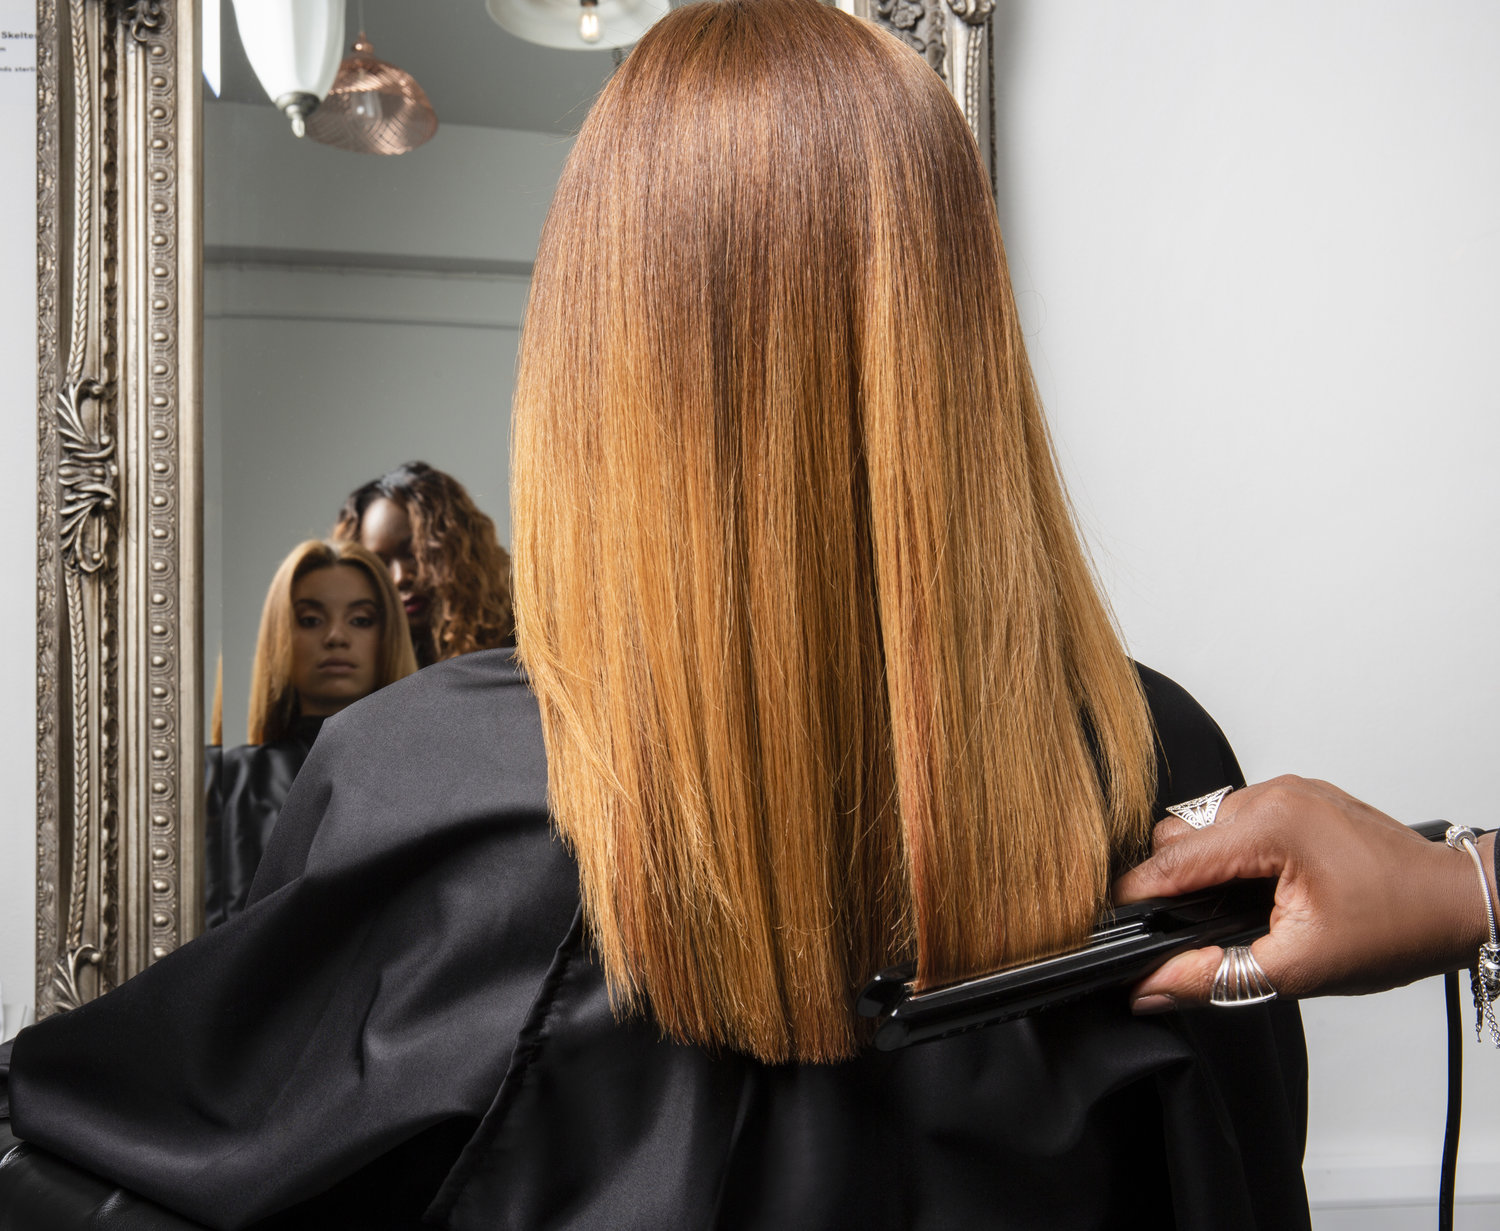 Avlon-keracare-hair resolutions 2019-straight or curly f-sondrea's signature styles salon and spa-el paso-texas.jpg